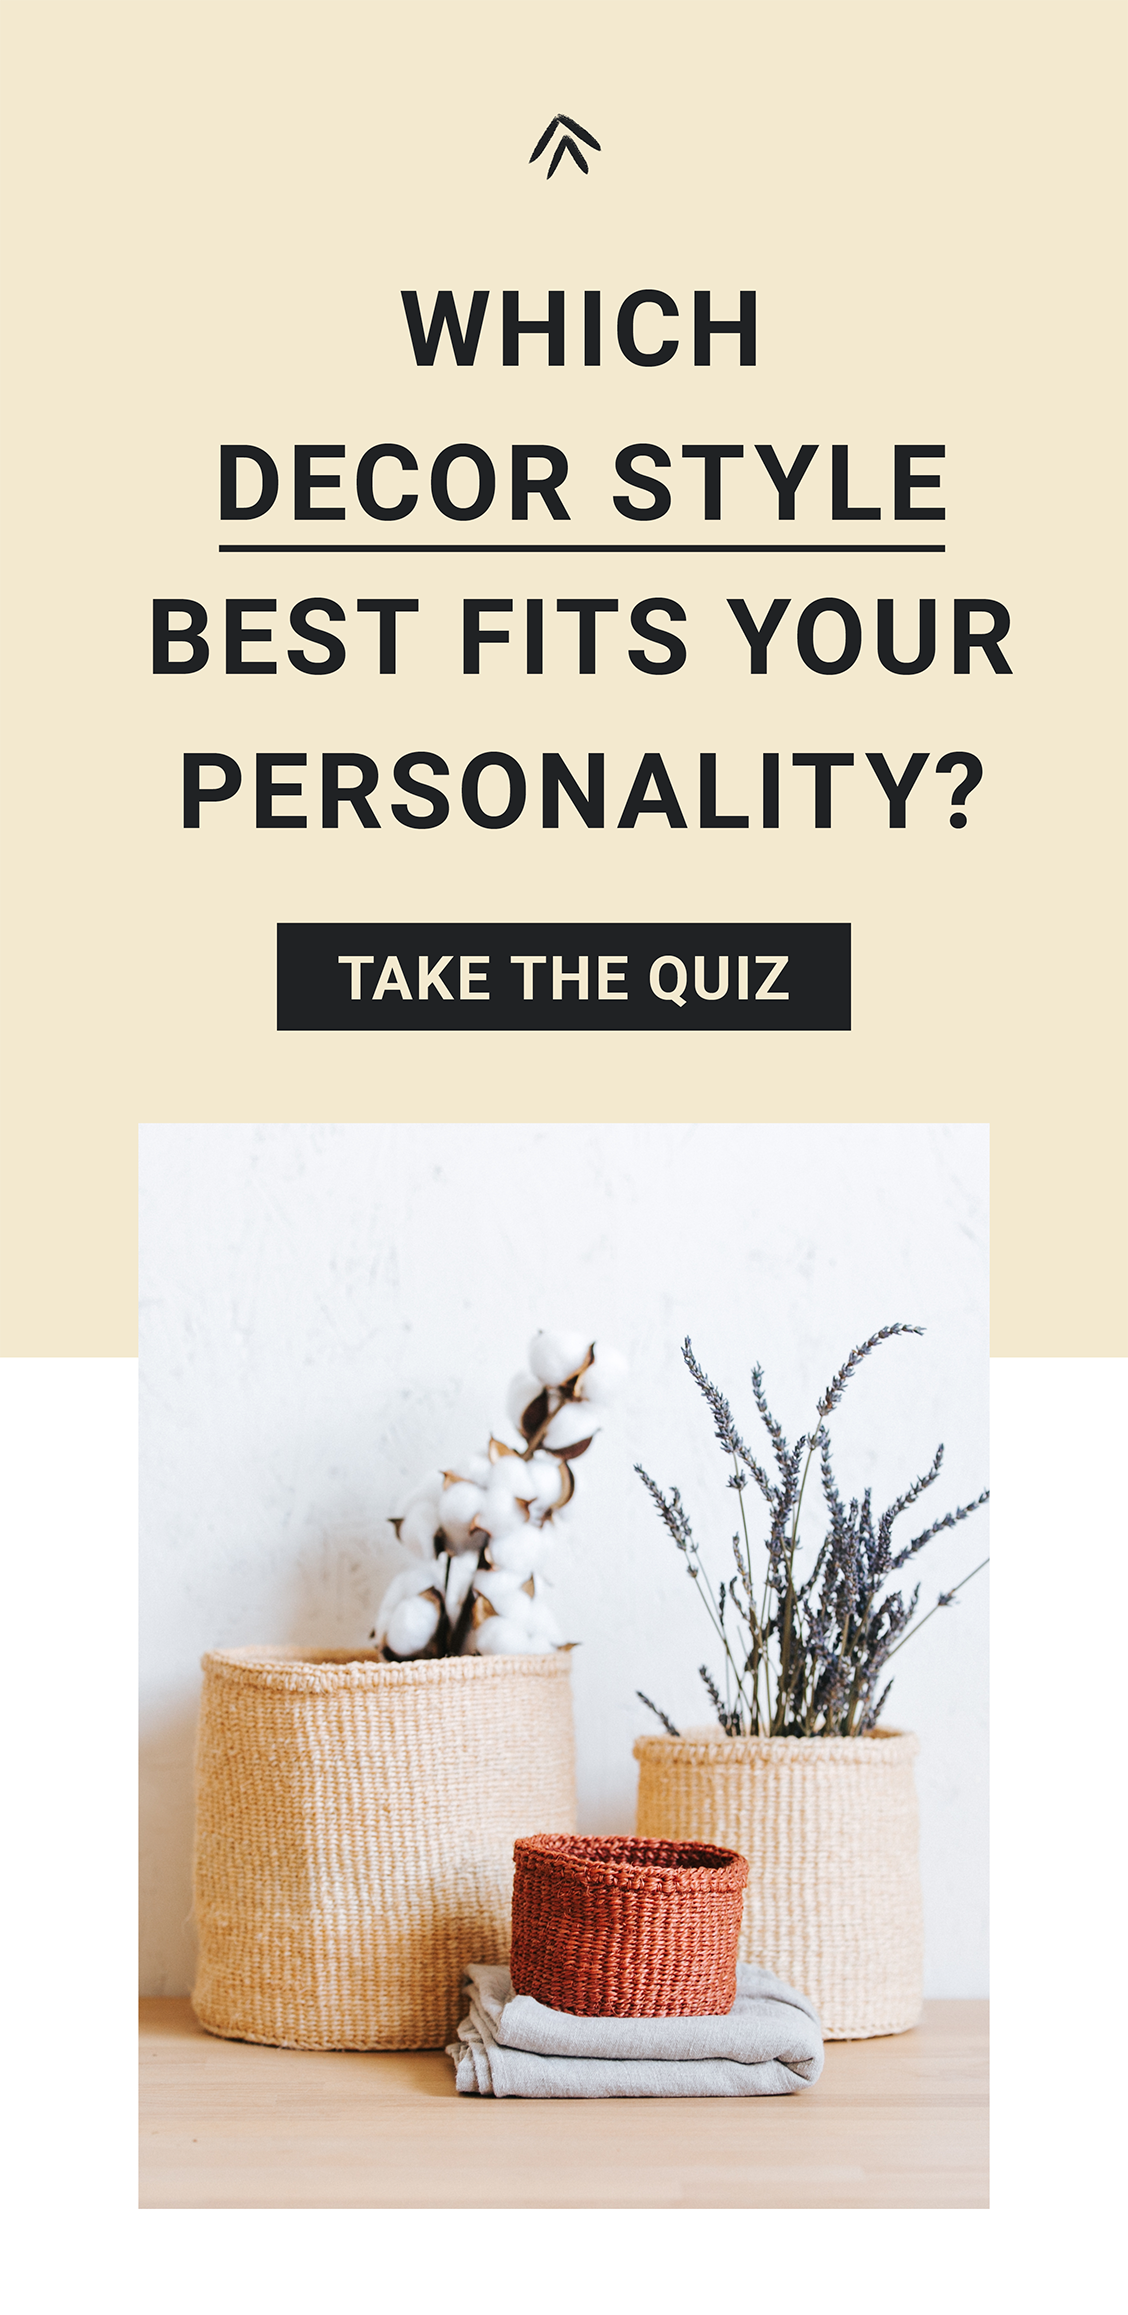 Take the quiz and find out! #interiordesign #interiors #interiorstyling